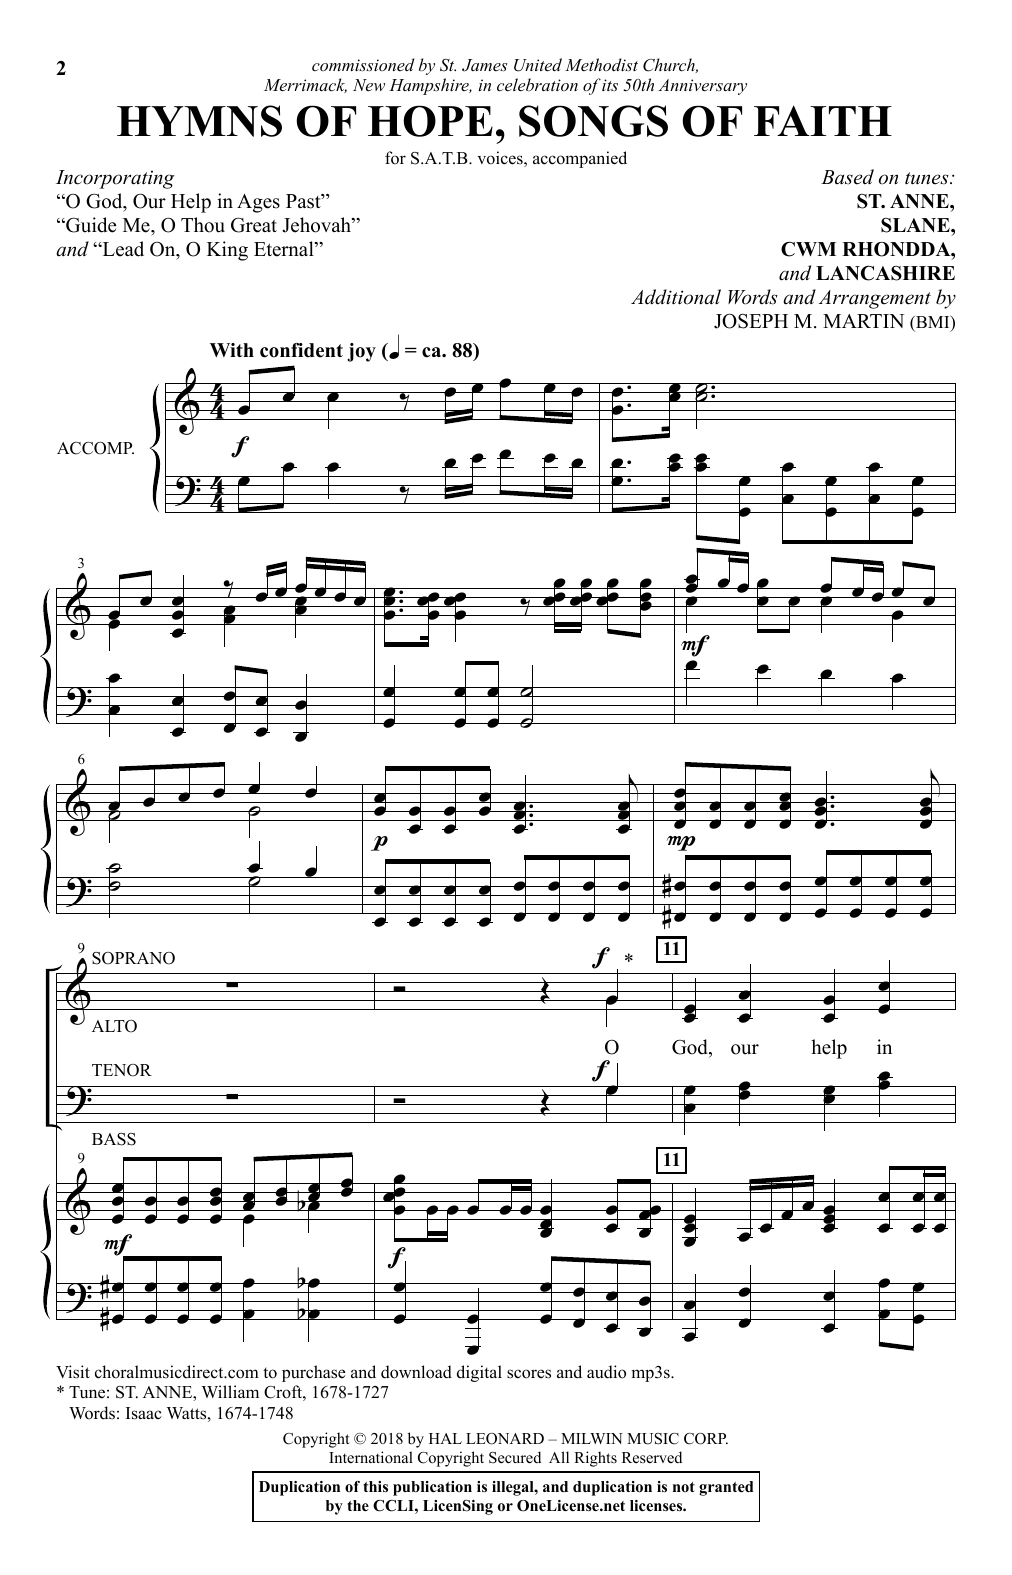 Hymns Of Hope, Songs Of Faith (SATB Choir)